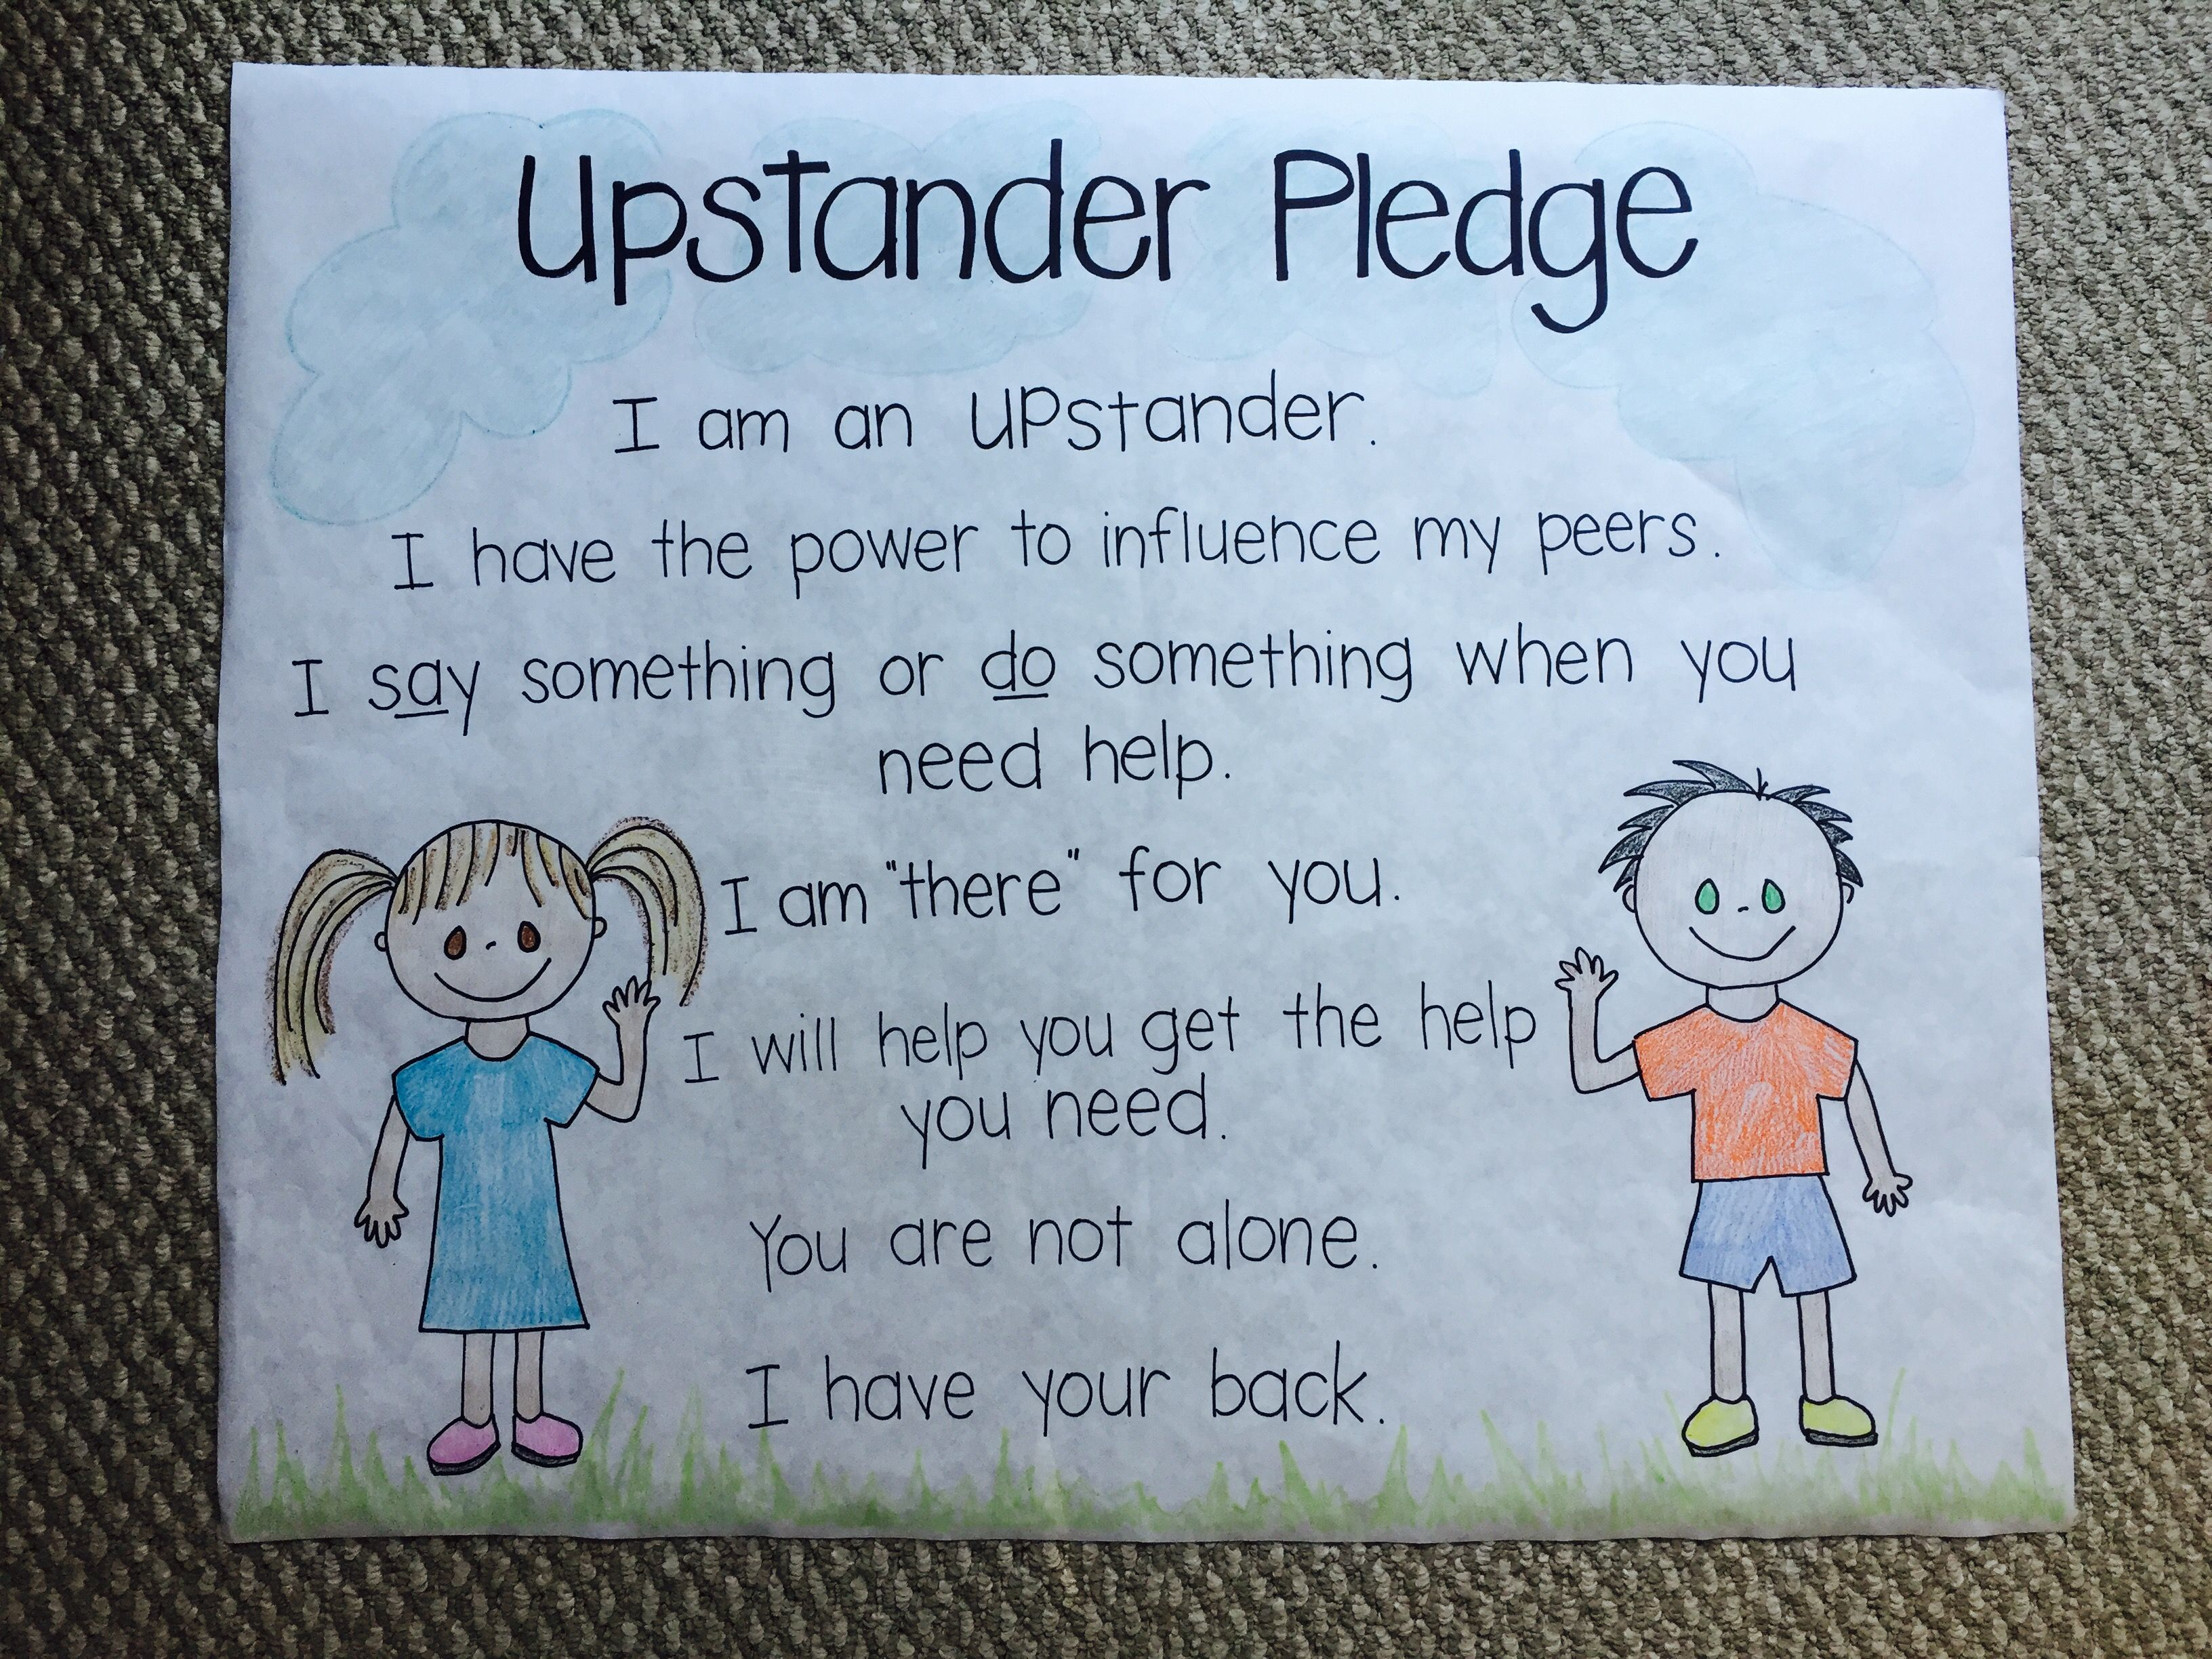 Upstander Pledge Created At Lietz Elementary For Use With